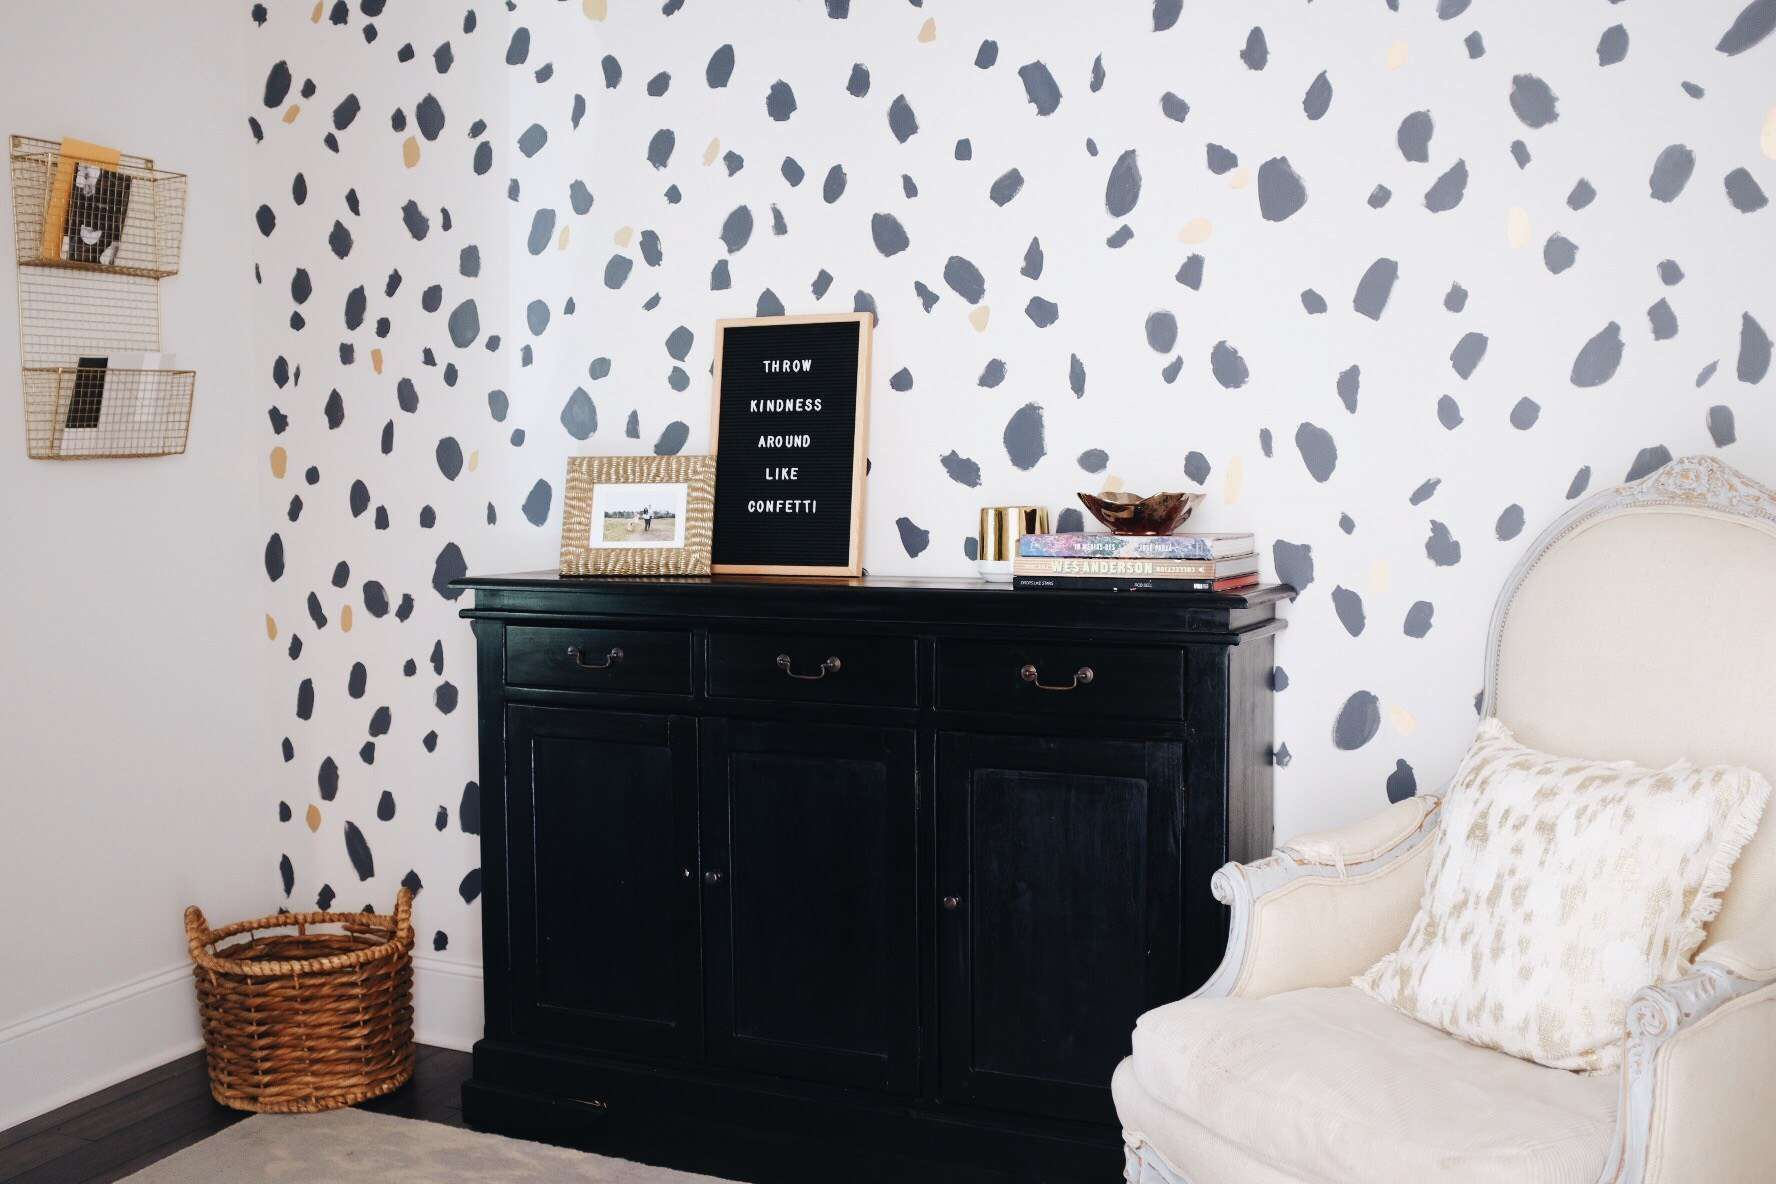 Diy Wallpaper Ideas To Add Color To Any Room